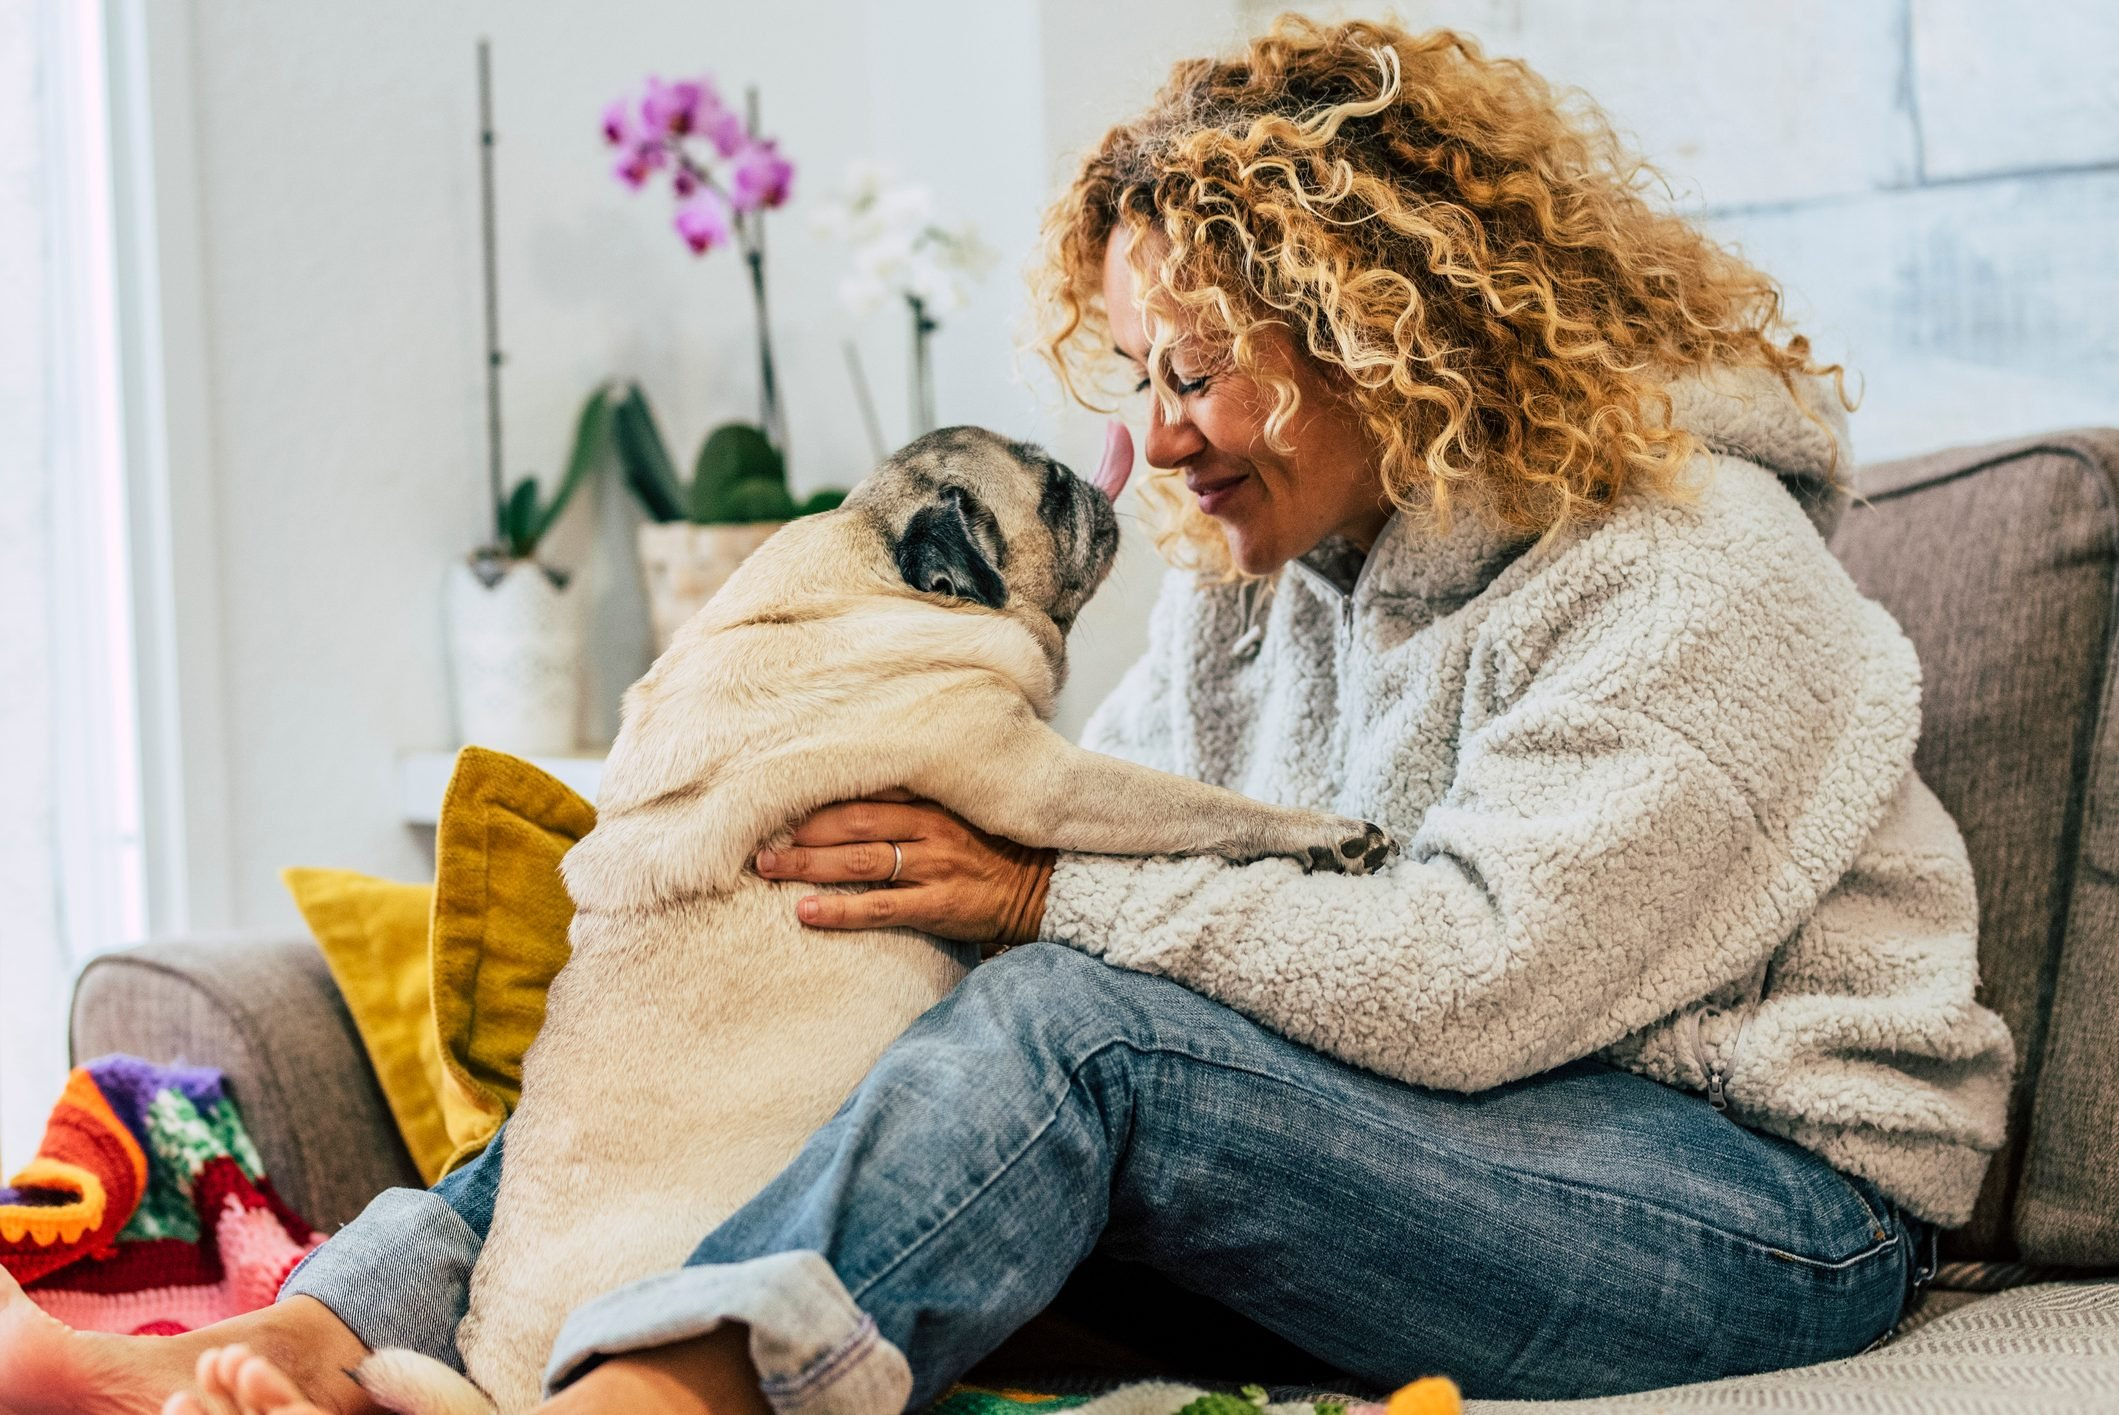 Playful happy activity at home with human woman people and funny pug dog kissing them on the sofa - cheerful young female play with domestic best friend at home